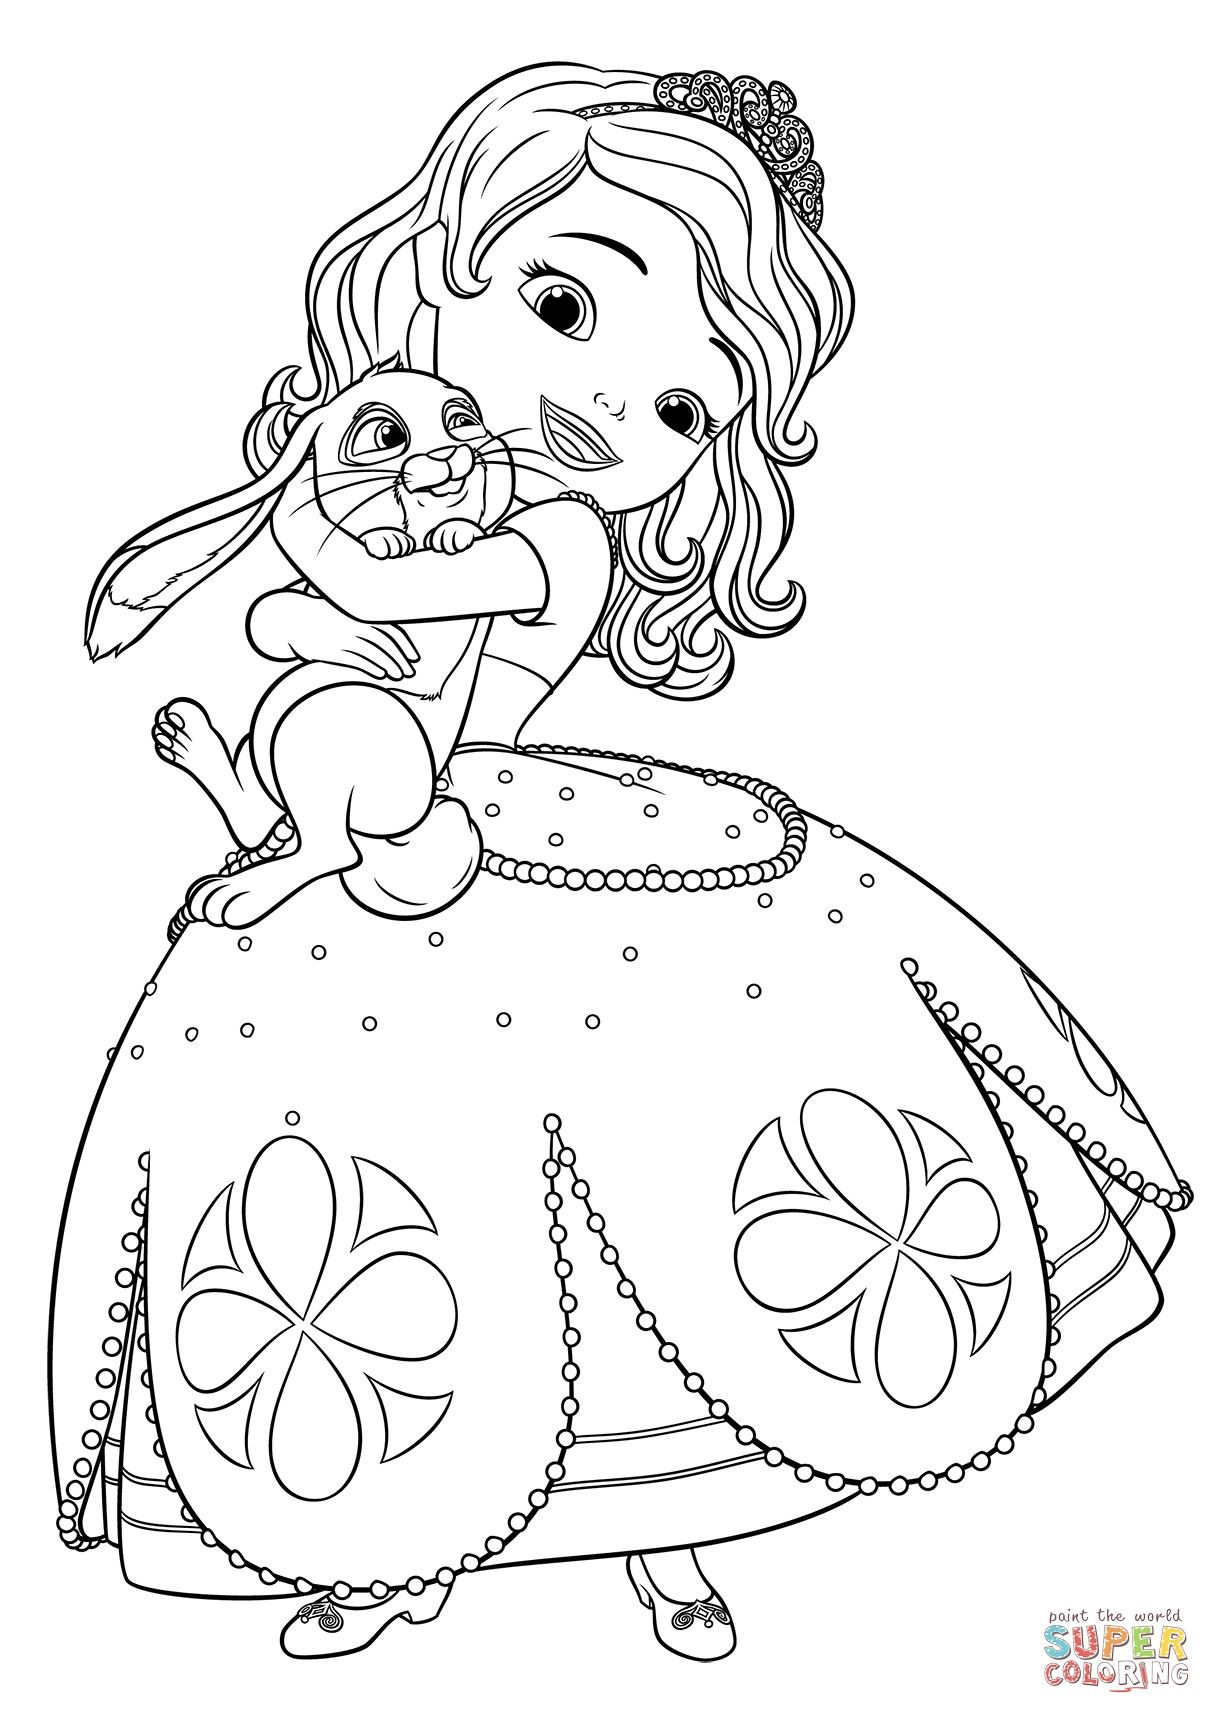 princess sofia the first coloring pages awesome princess sofia the first coloring page netart coloring first sofia princess the pages